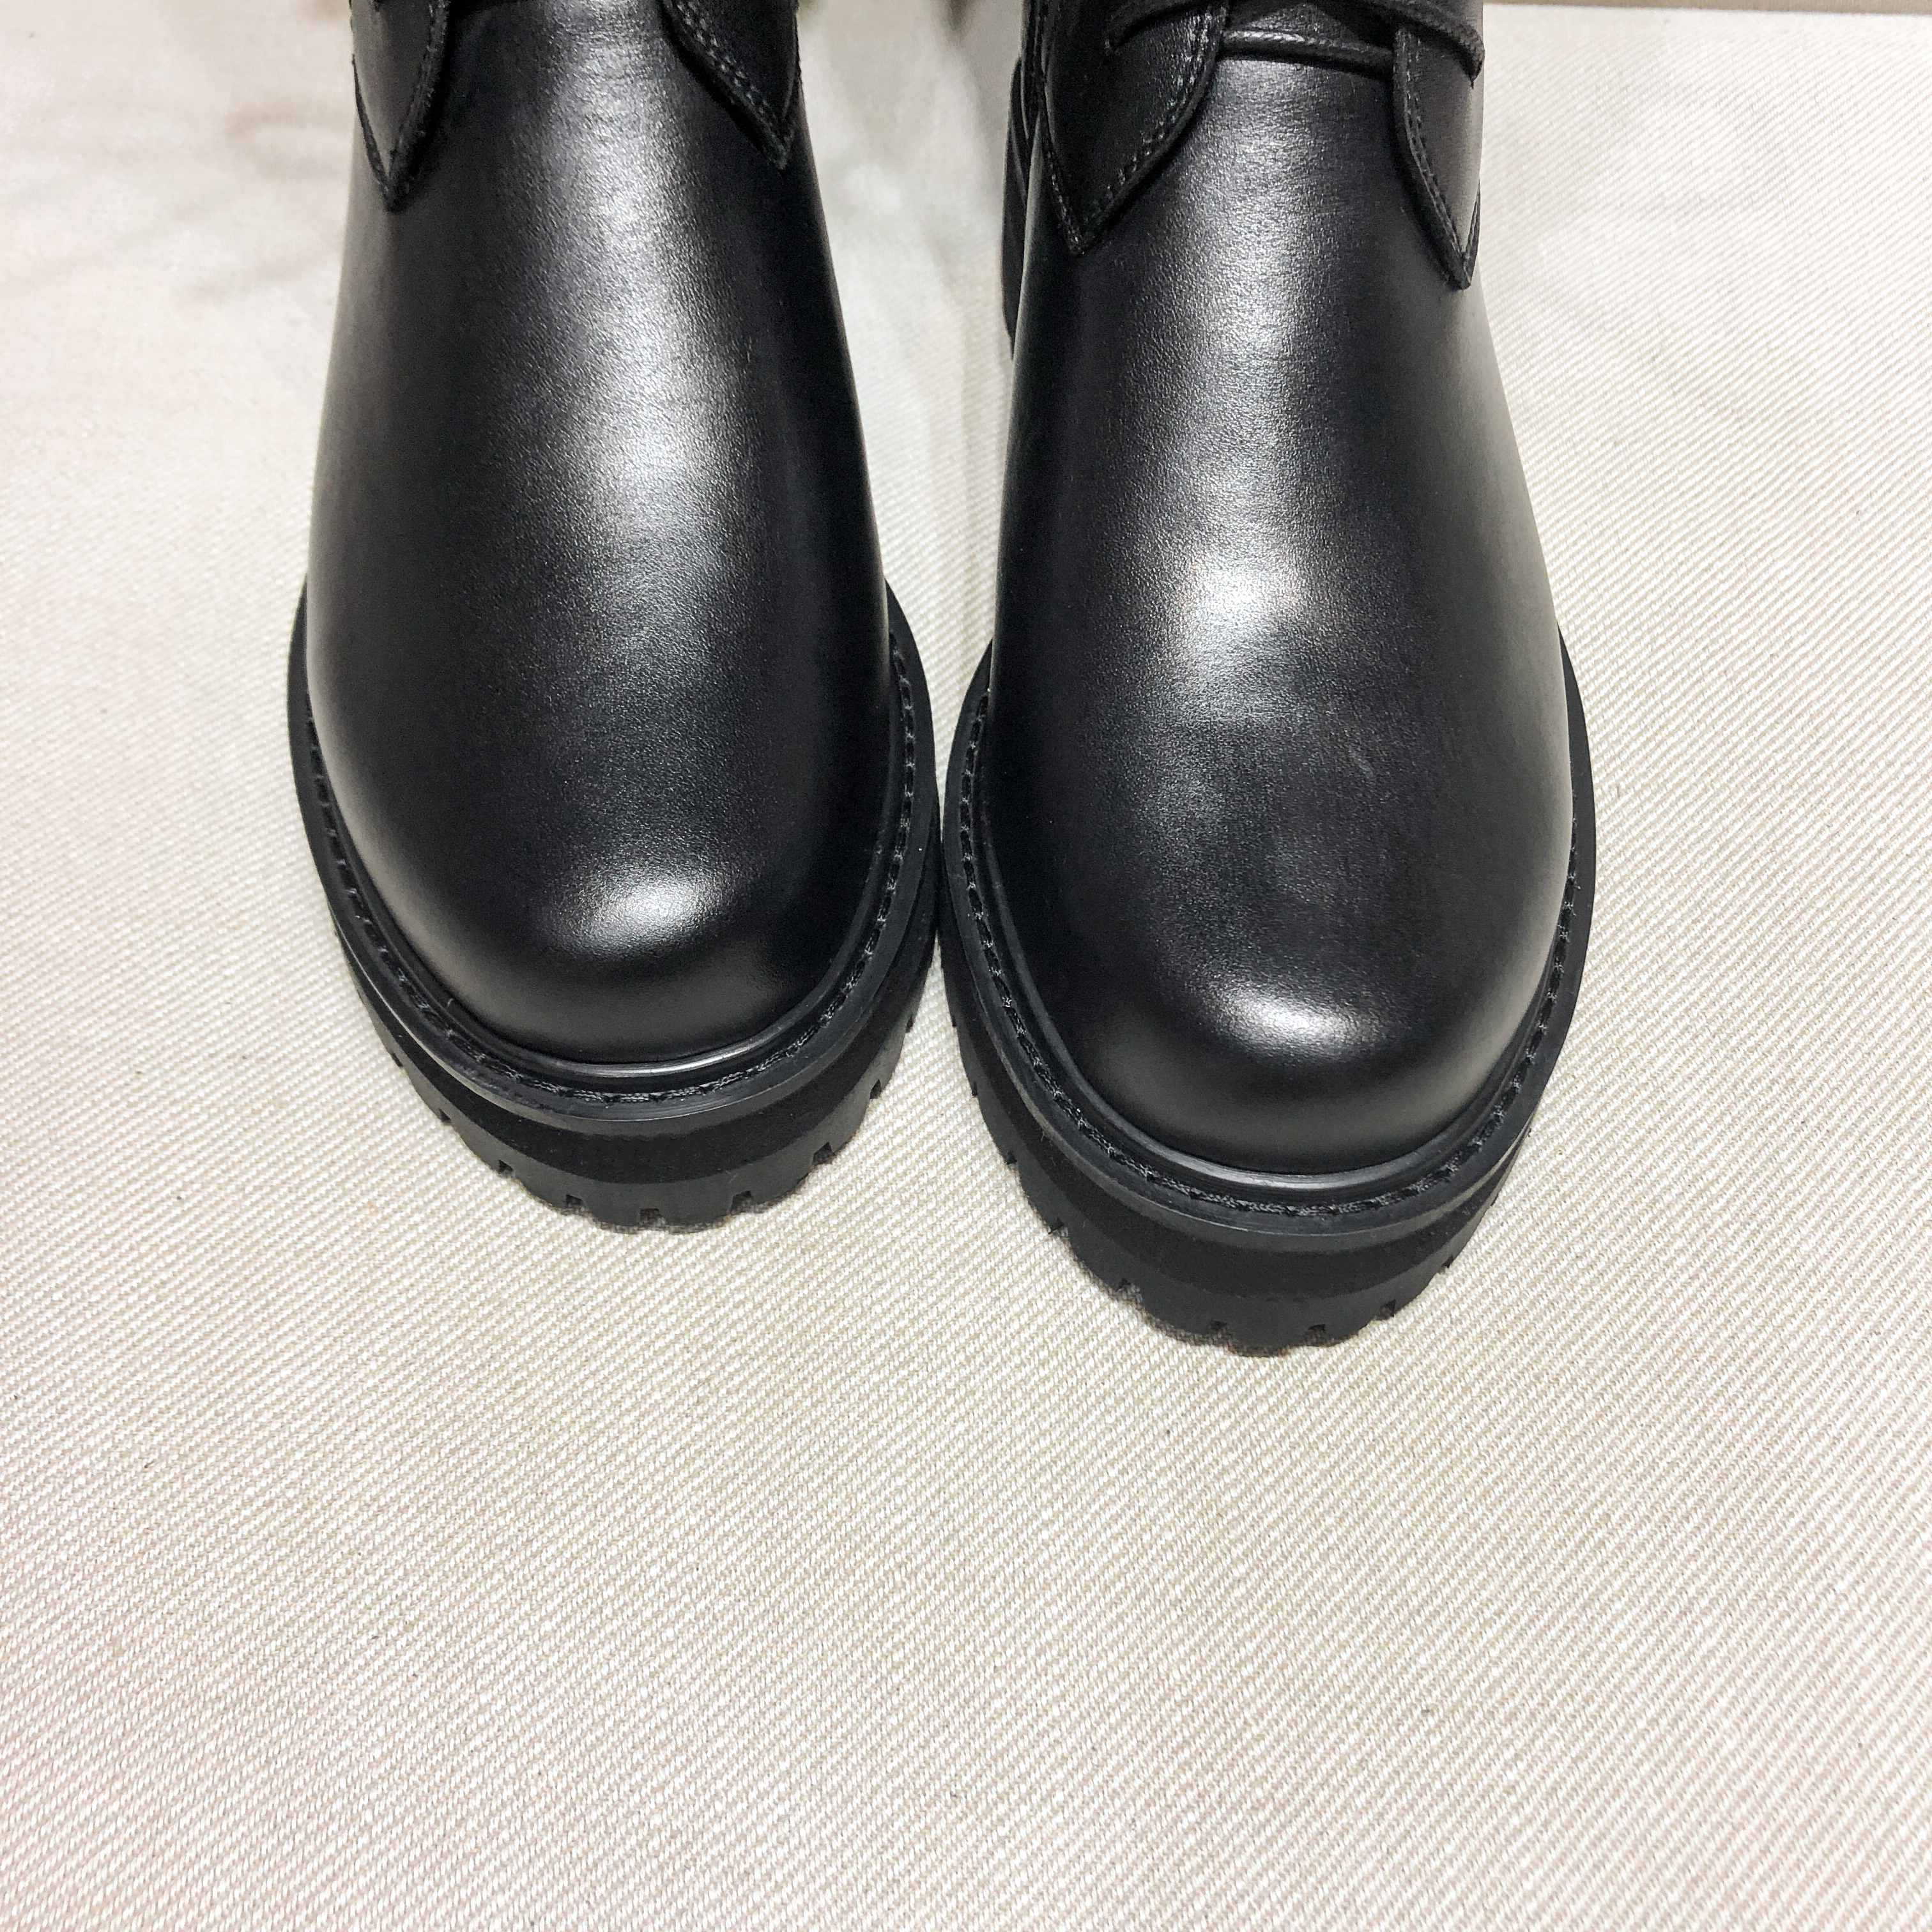 krazing pot genuine leather lace up med heels round toe punk superstar equestrian boots buckle fasteners over-the-knee boots 4